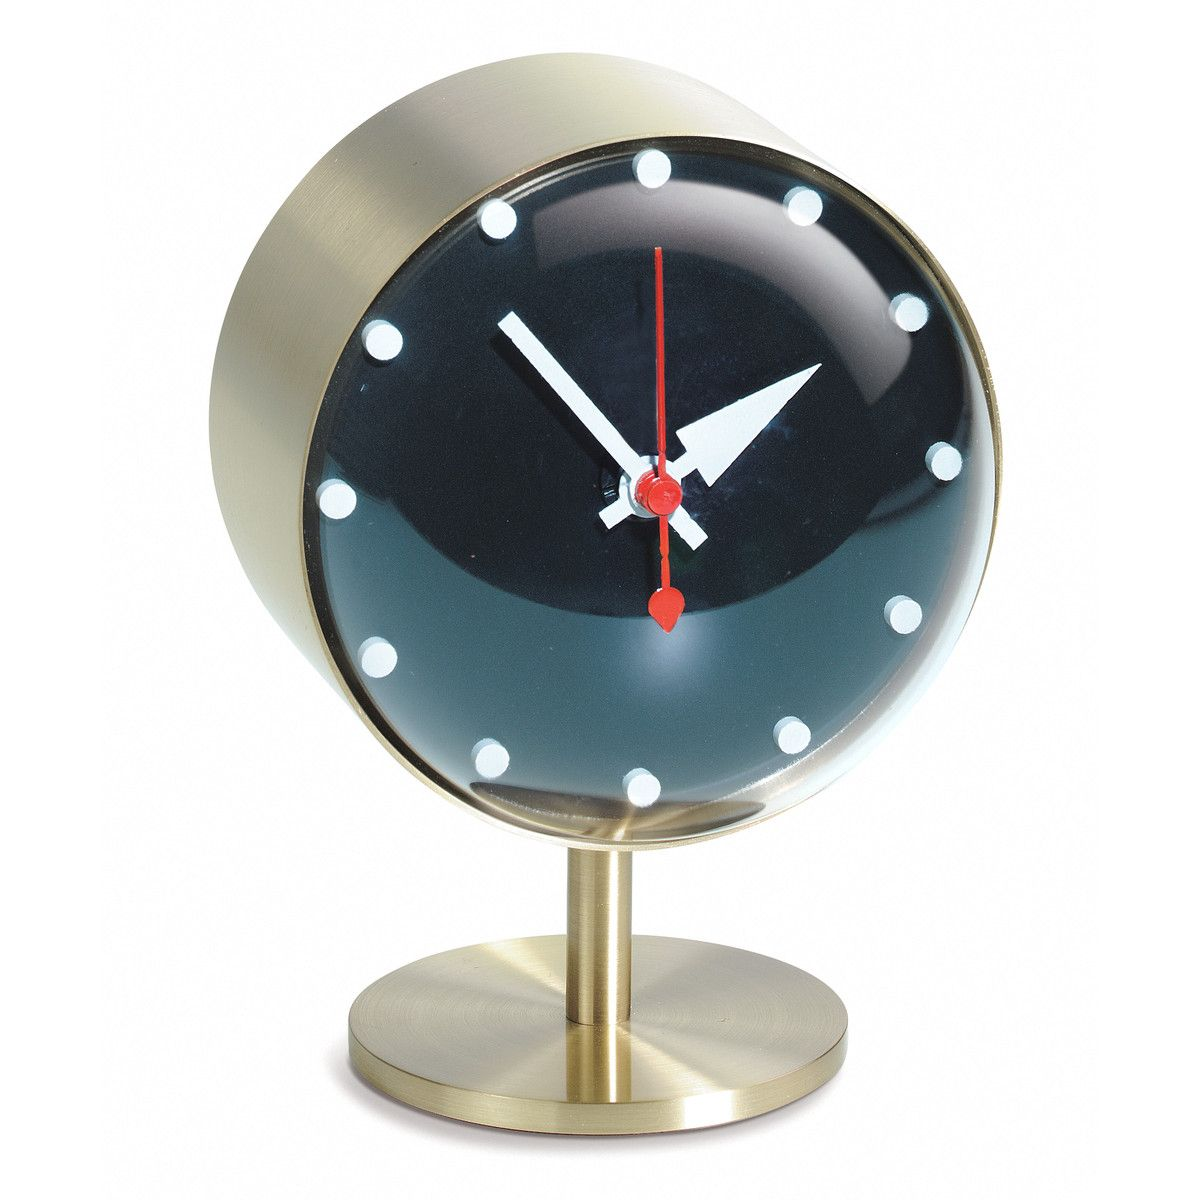 Vitra George Nelson Clock - Night Clock - With the diversity of materials  used and their sculptural shapes, George Nelson's clocks embody the joie de  vivre ...